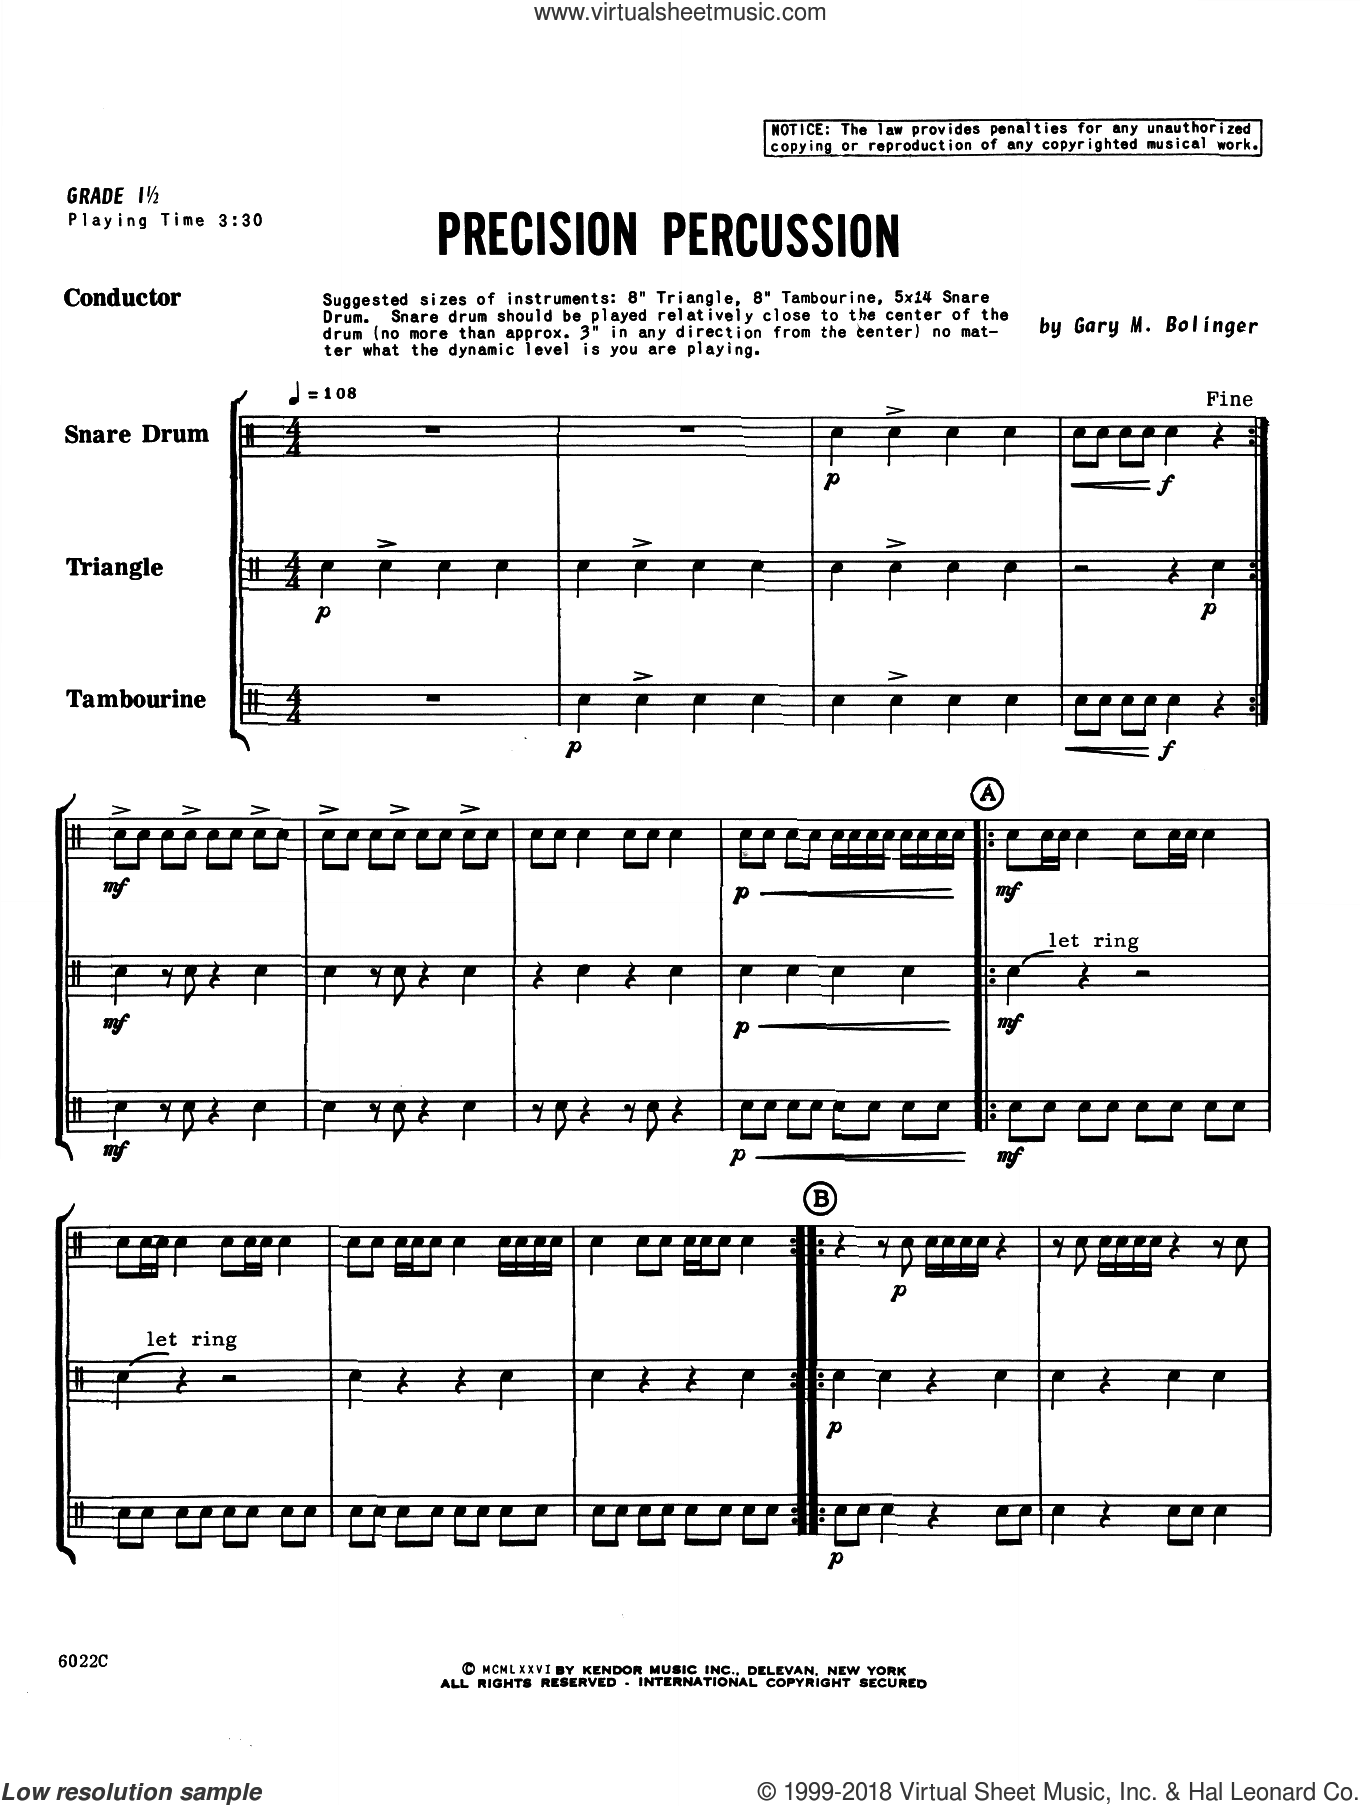 Precision Percussion (COMPLETE) sheet music for percussions by Gary M. Bolinger, intermediate skill level